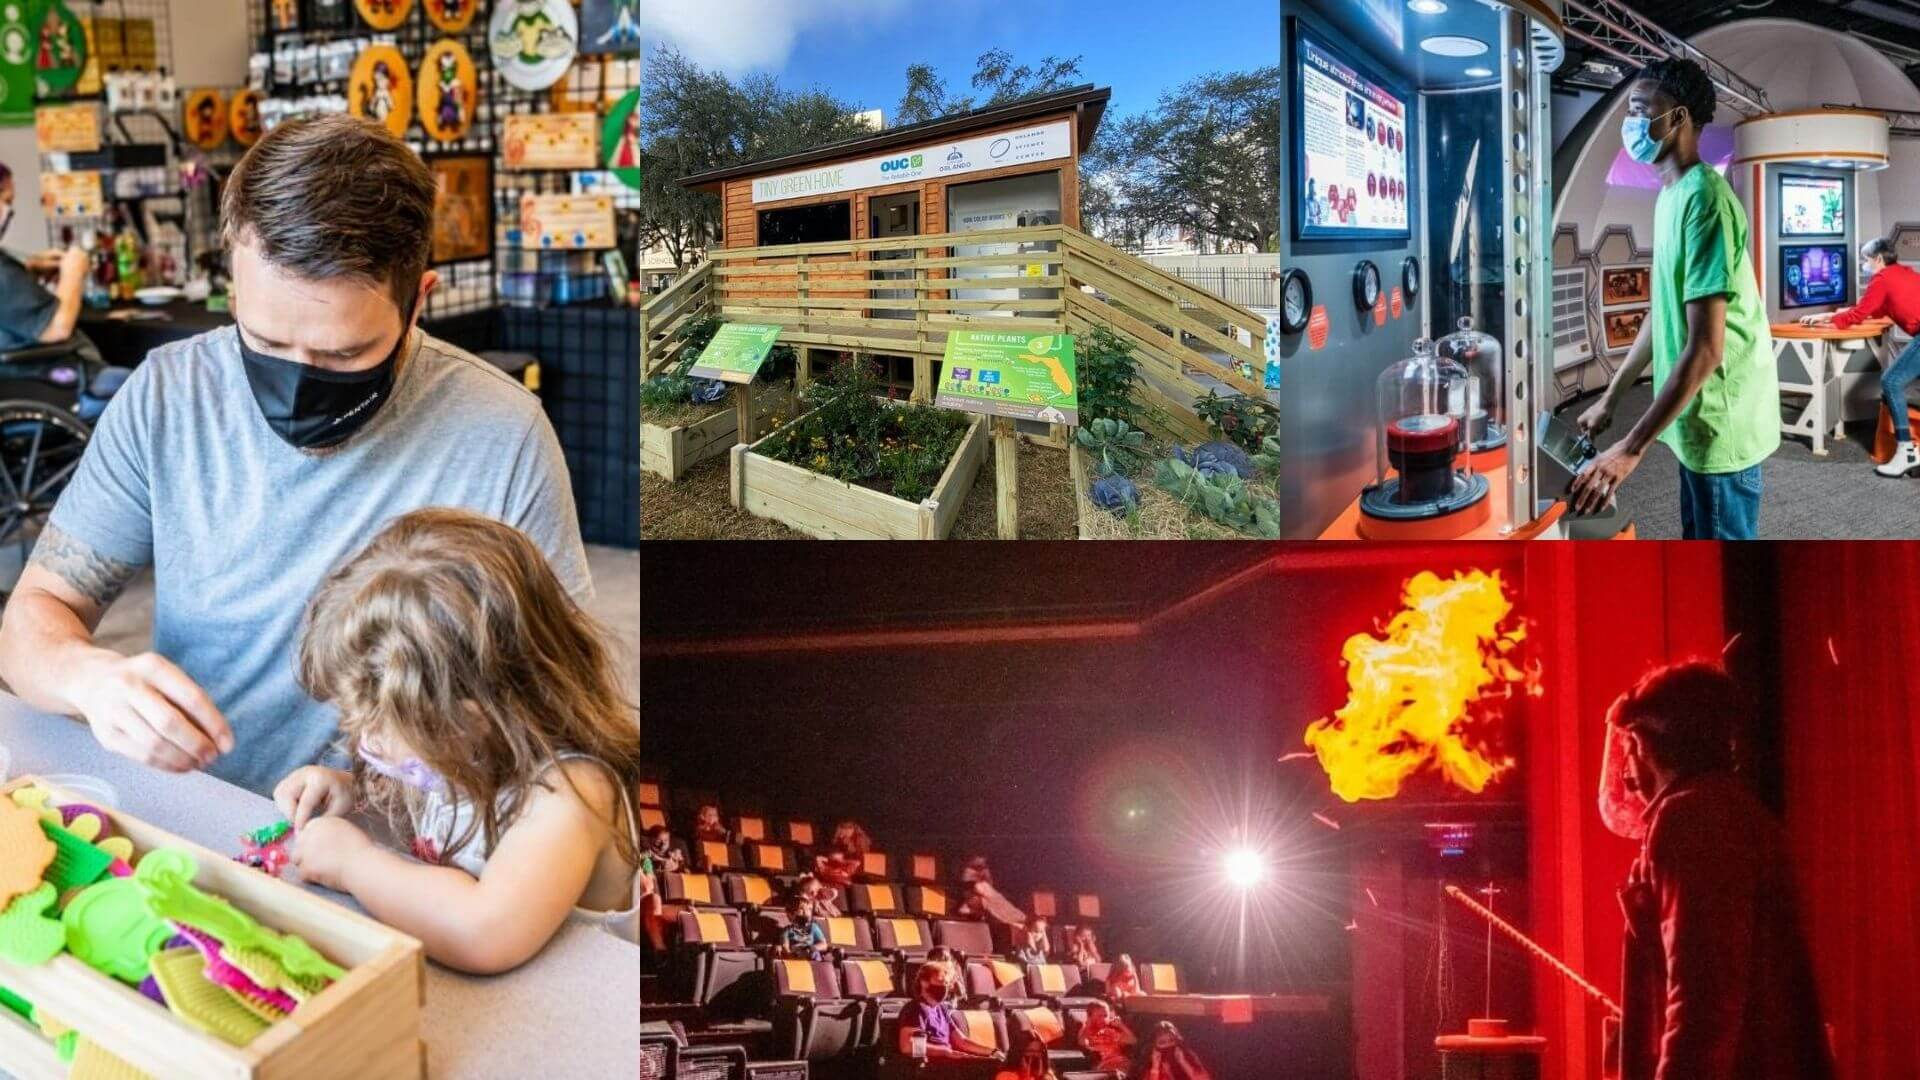 People experiencing programs over Spring Break at Orlando Science Center